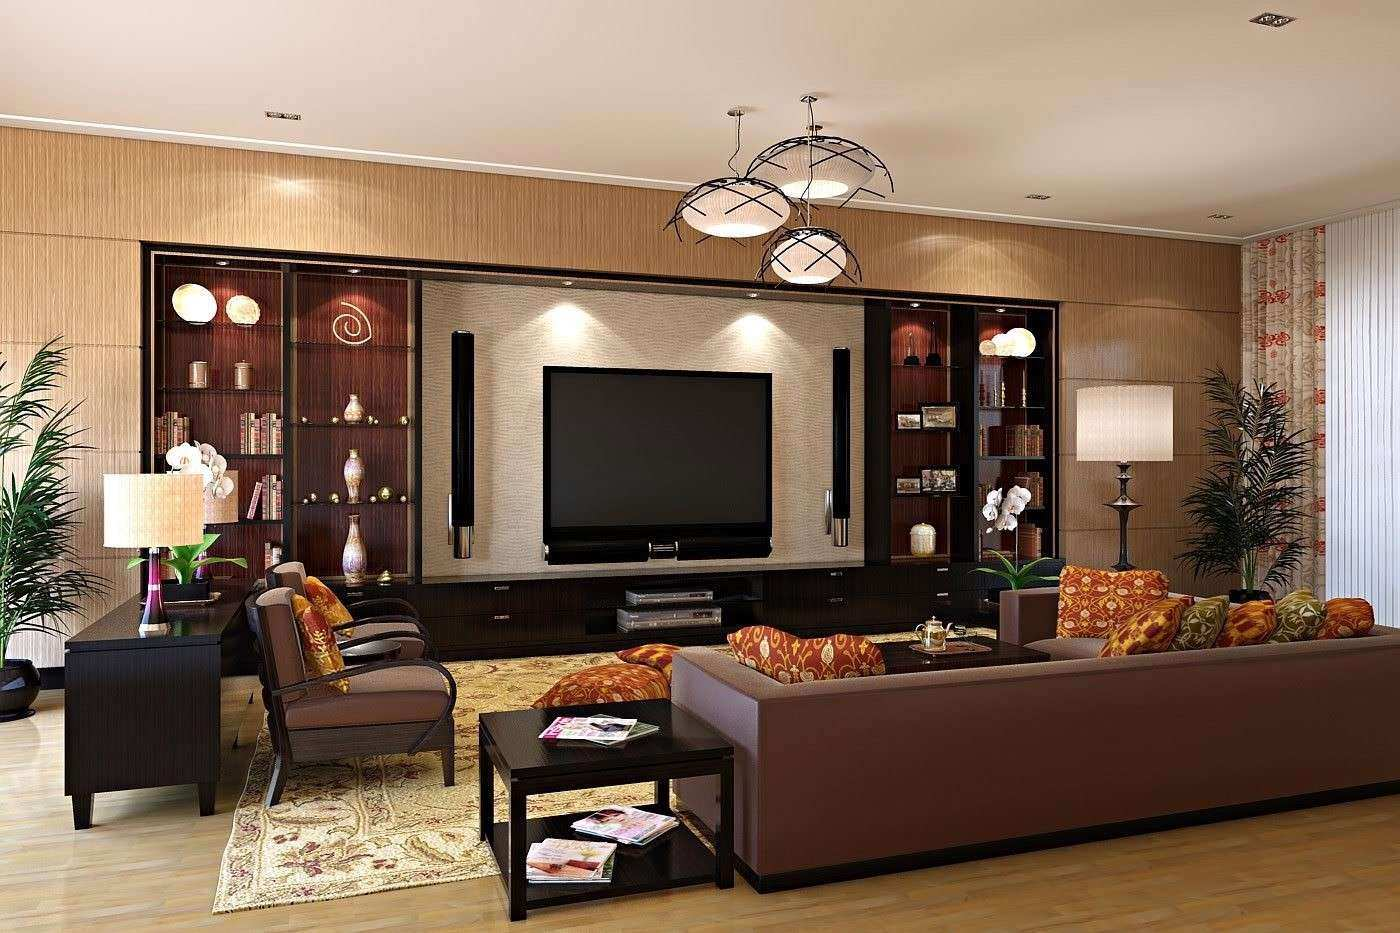 with wall decor cream cabinets room concept decoration of ideas living tasteful design for tv interior size photos full